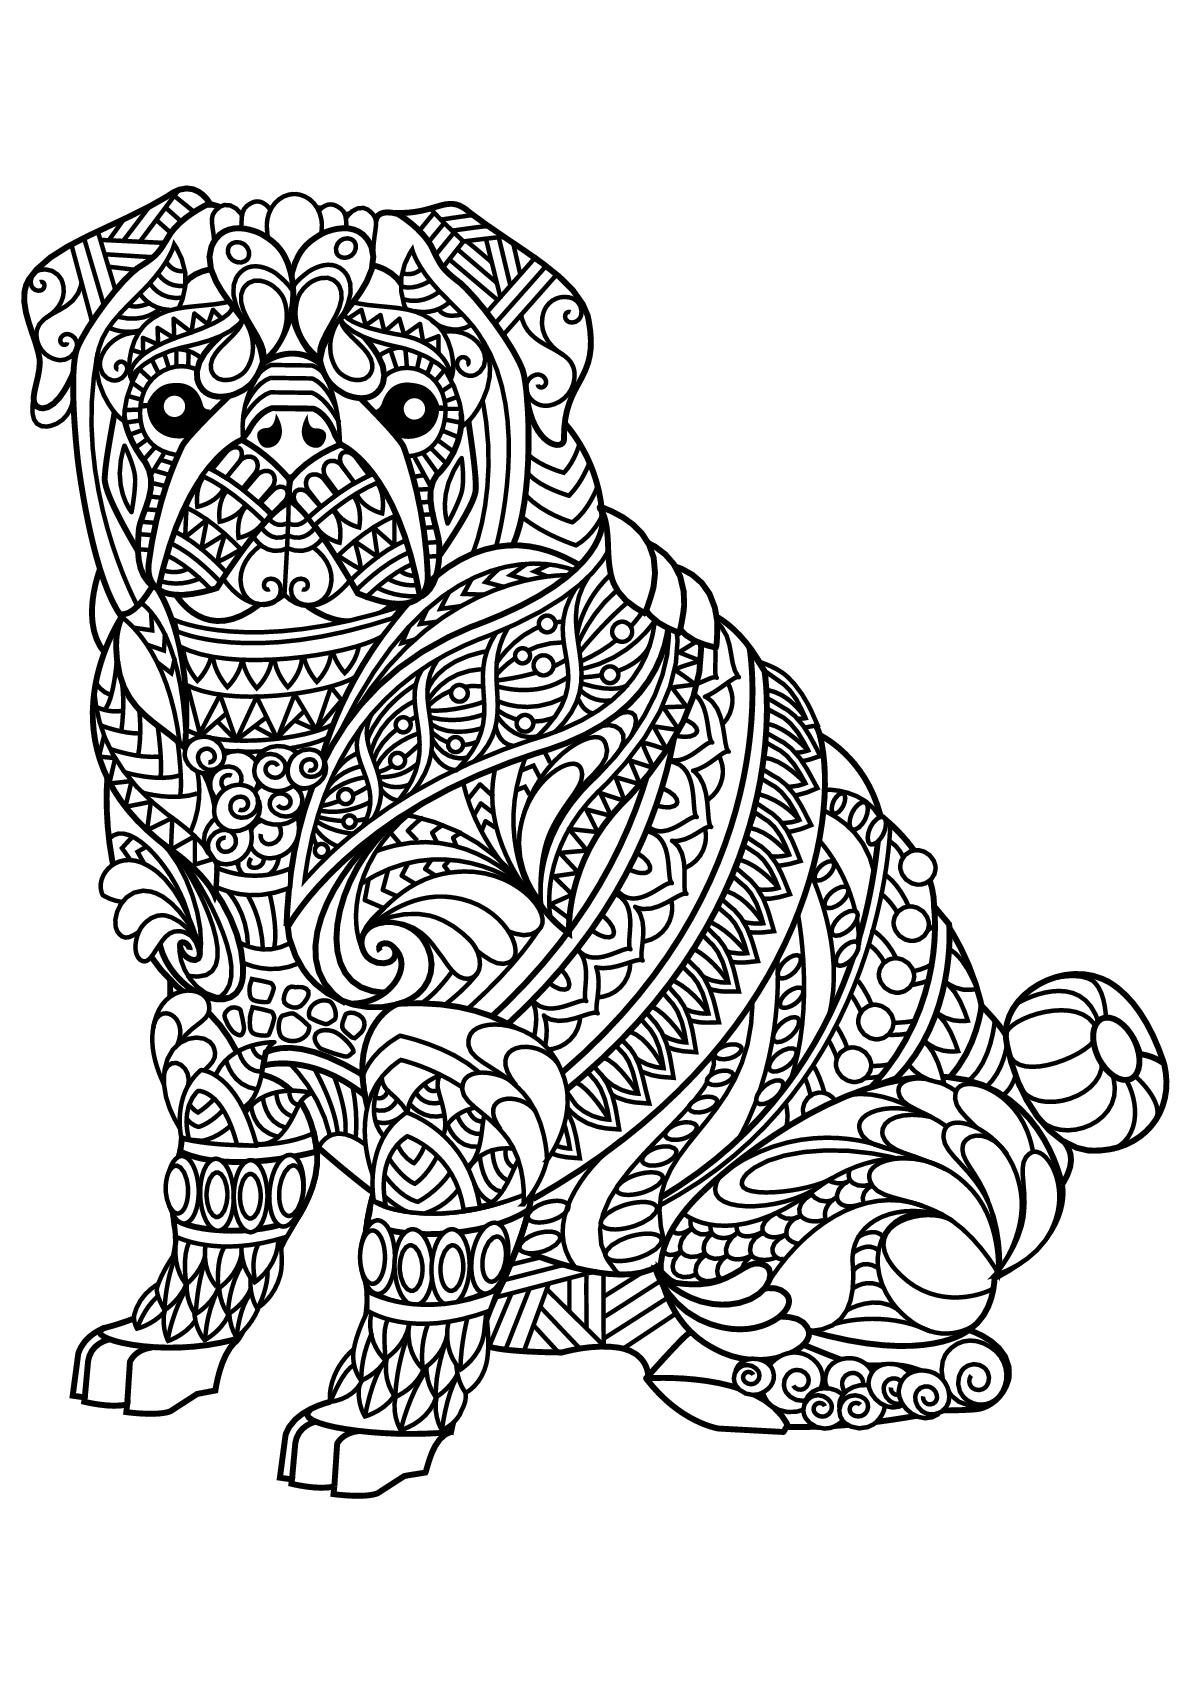 coloring dog for kids dog to color for children dogs kids coloring pages kids dog for coloring 1 1